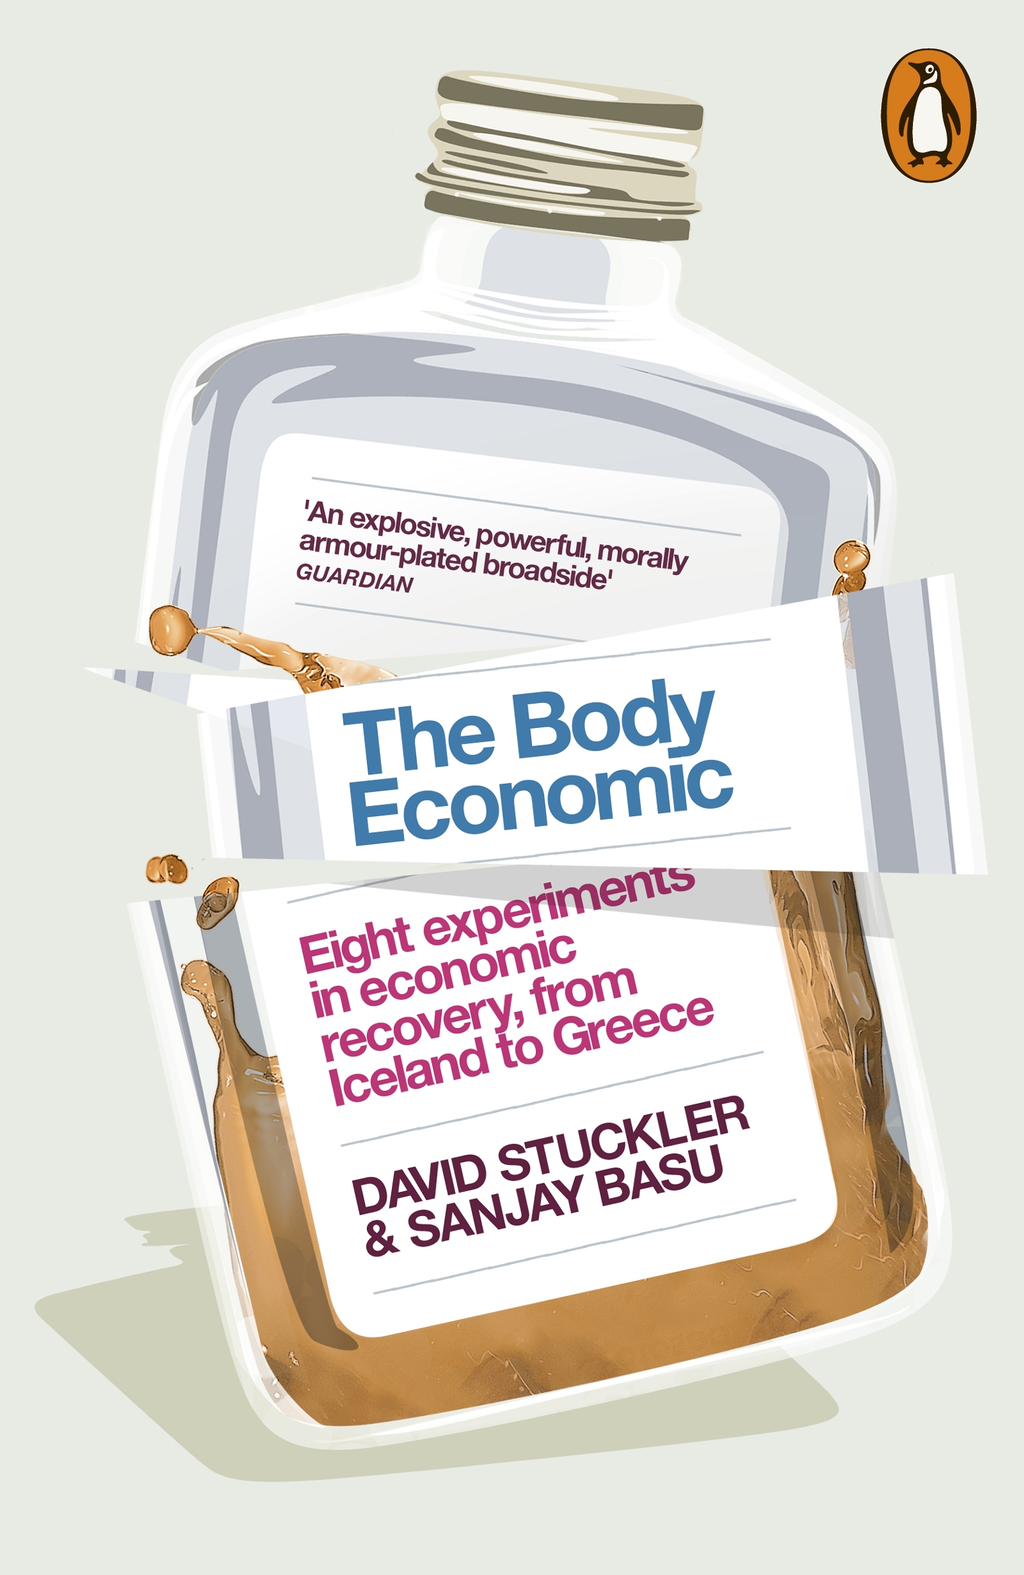 The Body Economic Eight experiments in economic recovery,  from Iceland to Greece